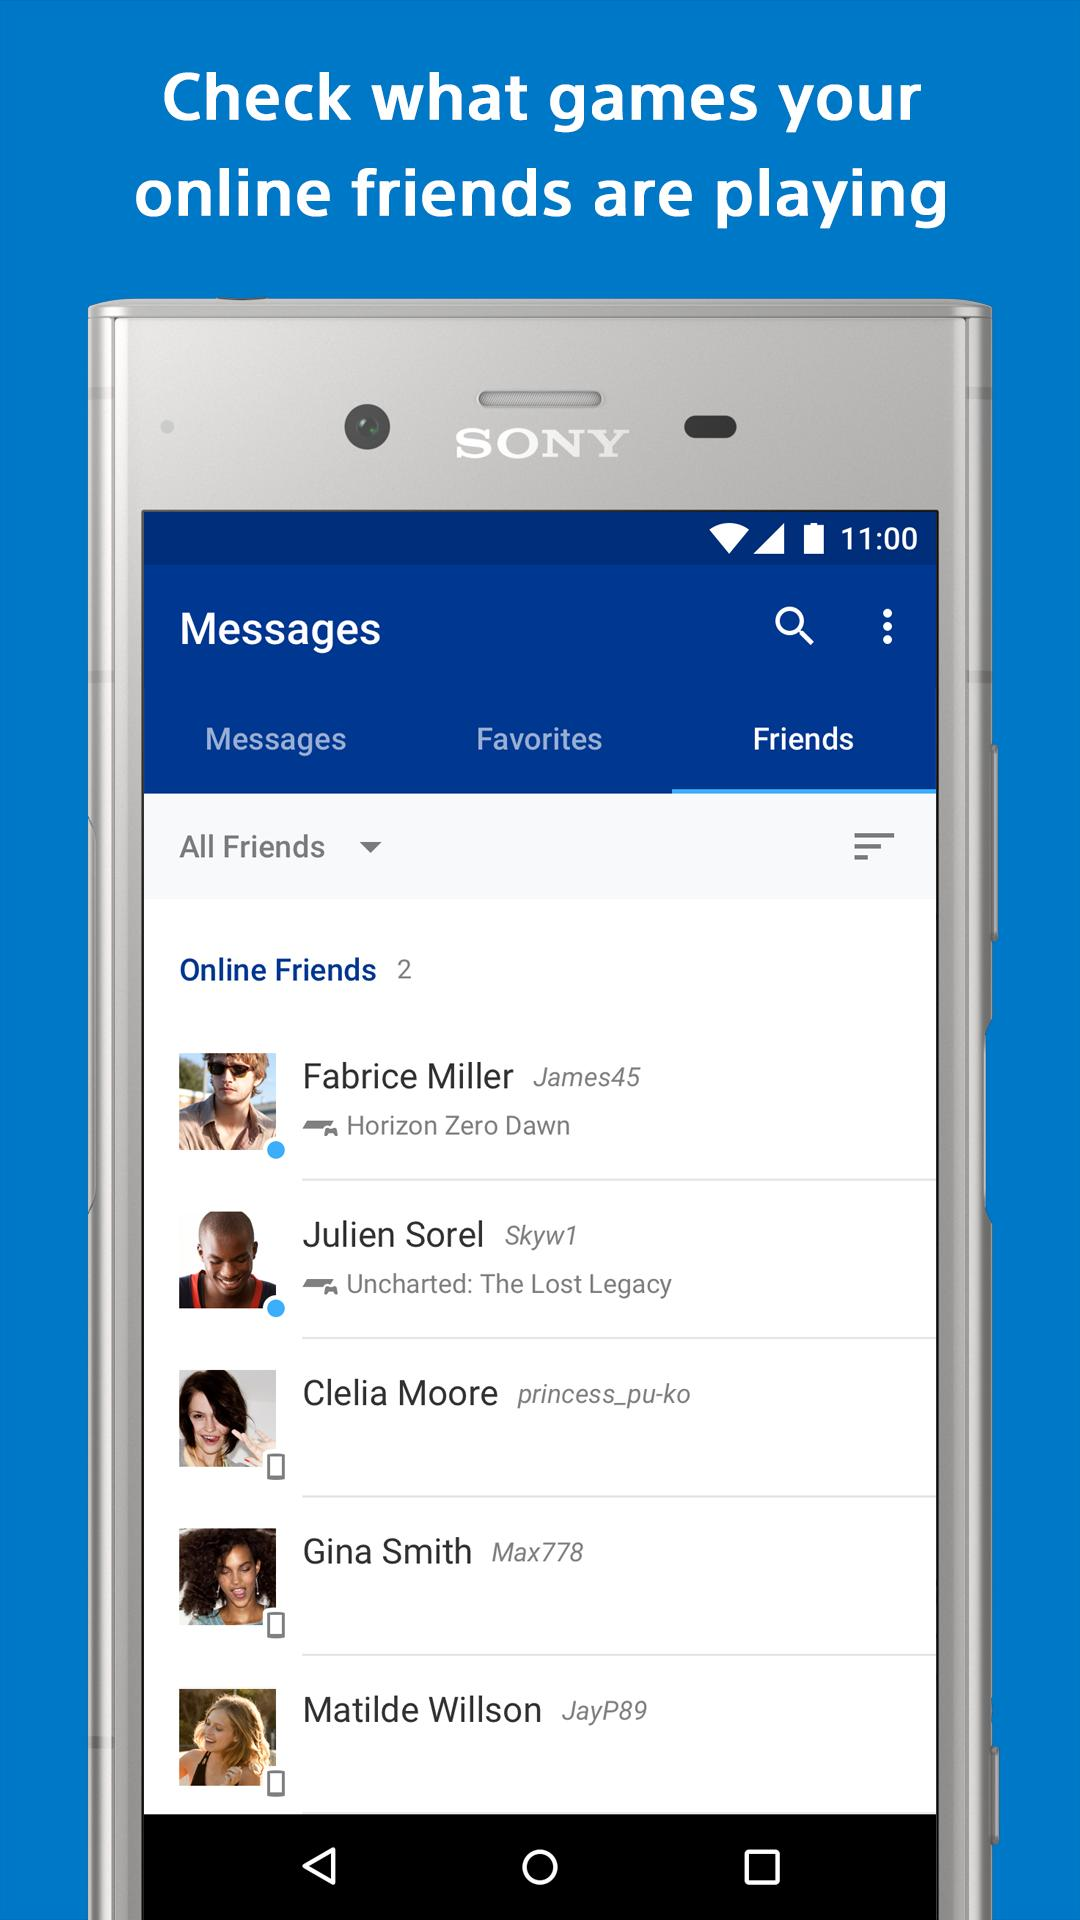 PlayStation Messages - Check your online friends for Android - APK